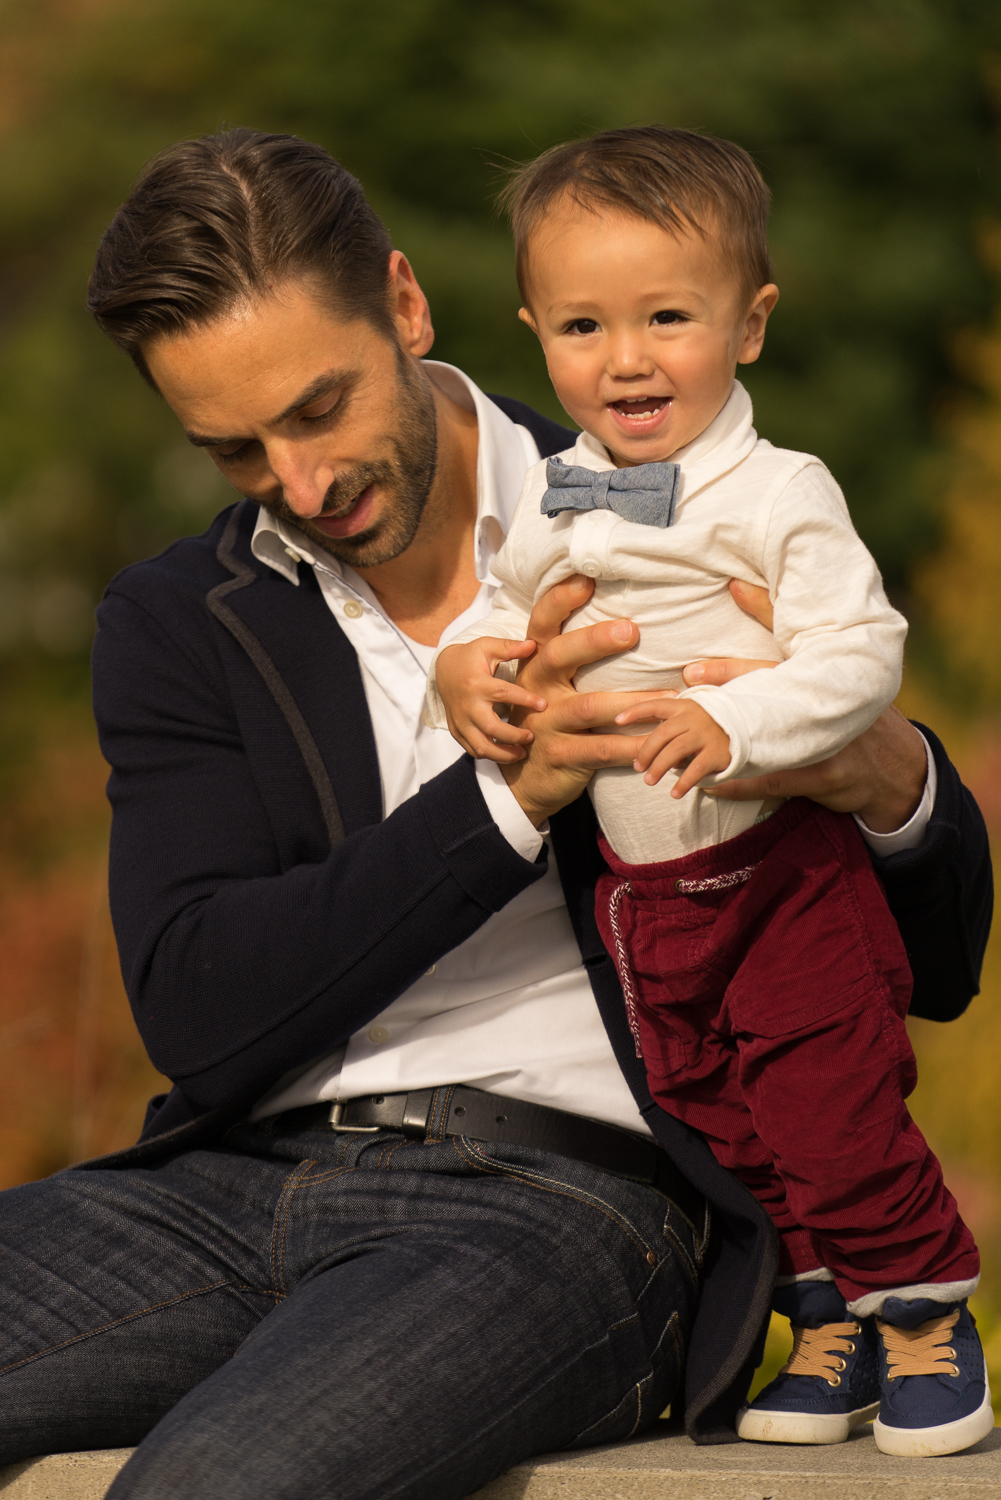 father and son playing-San Francisco East Bay family photographer